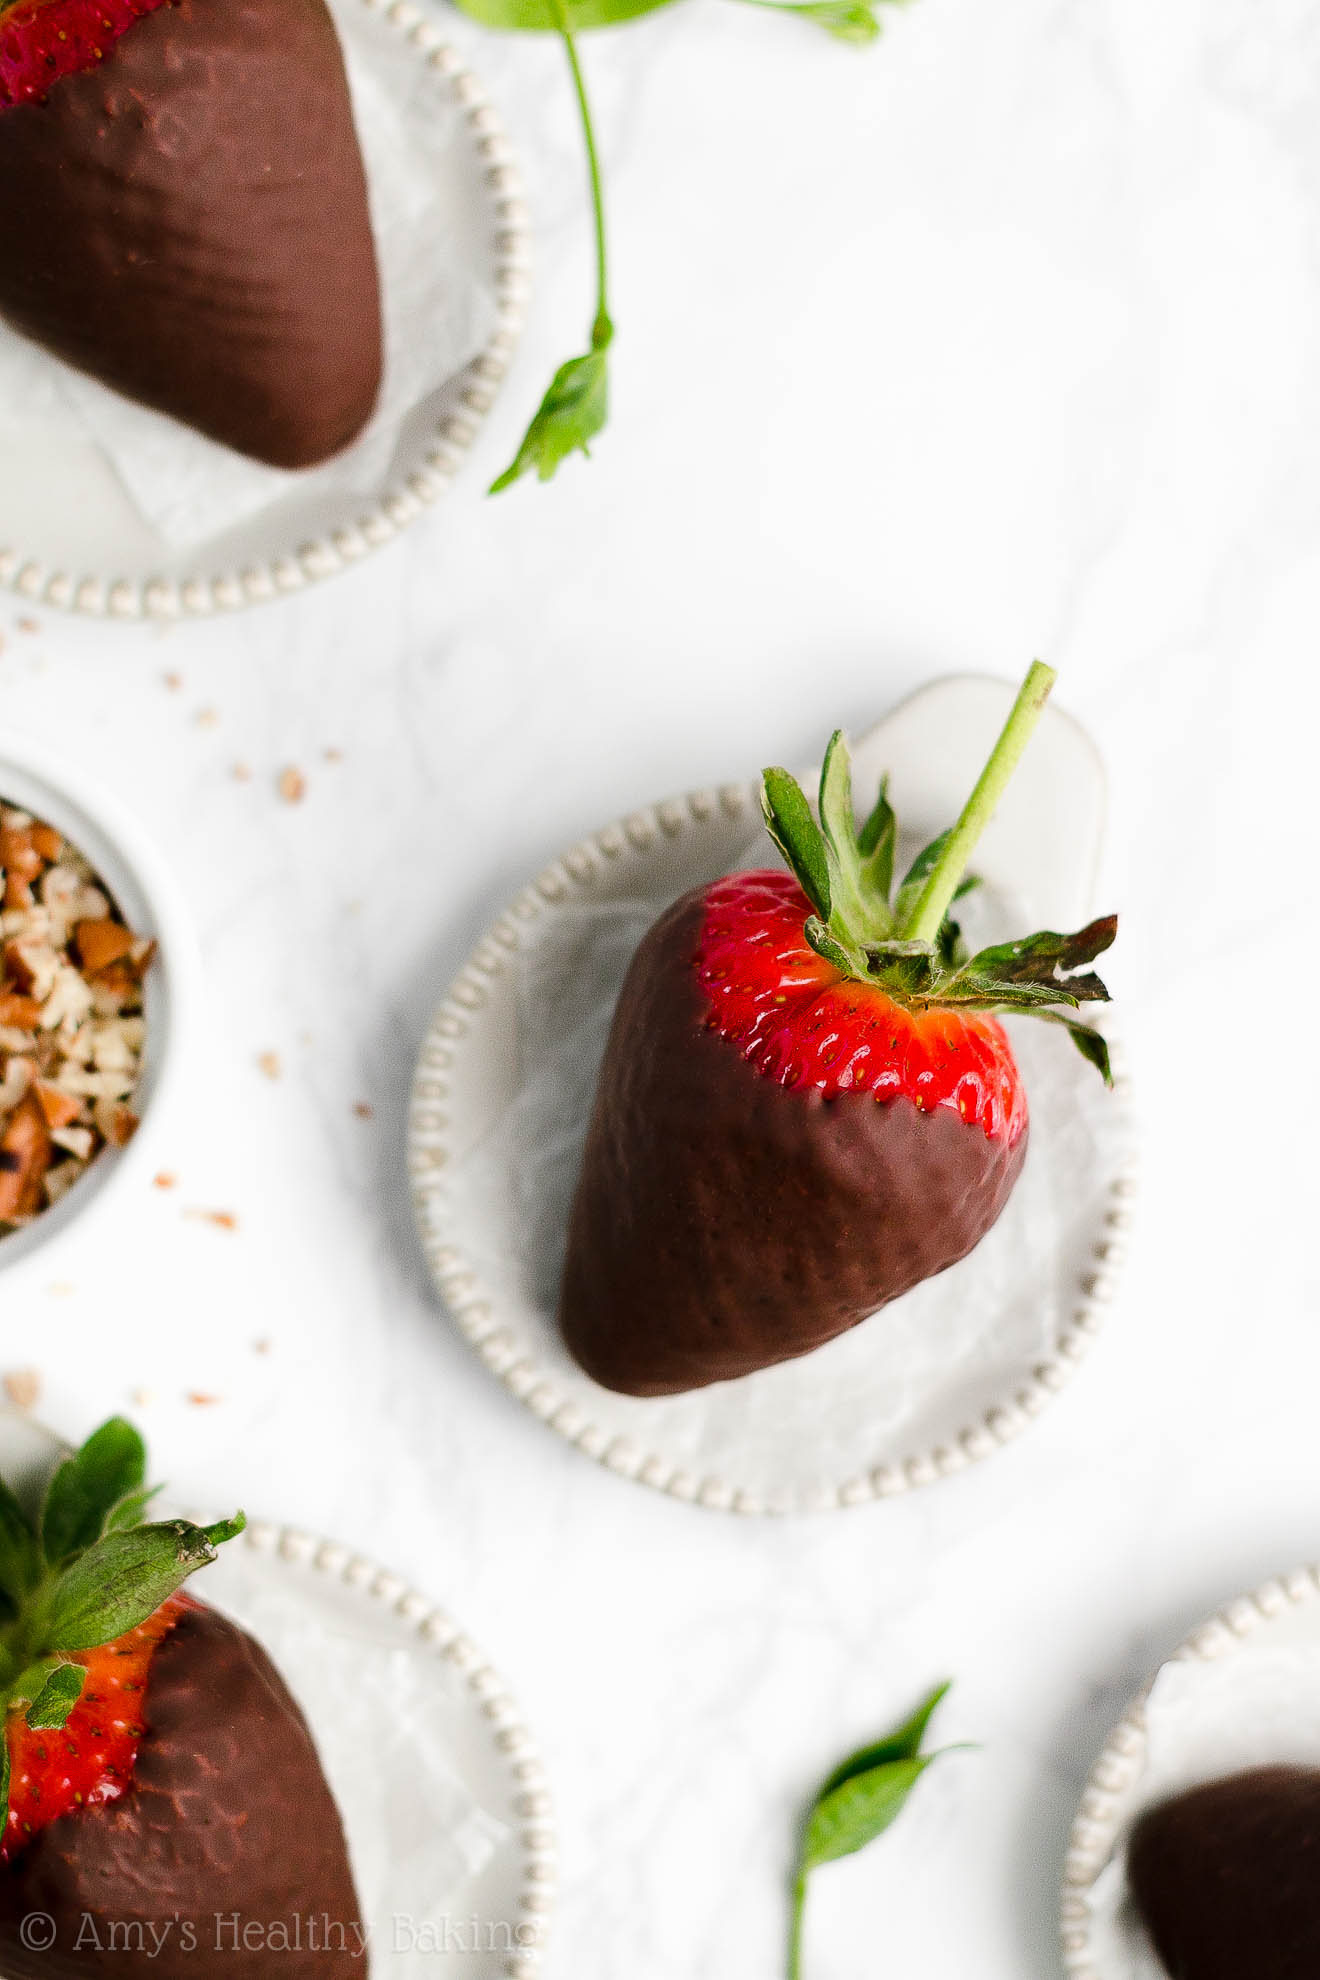 Perfect, BEST EVER Gluten Free Dairy Free Healthy Chocolate Covered Strawberries